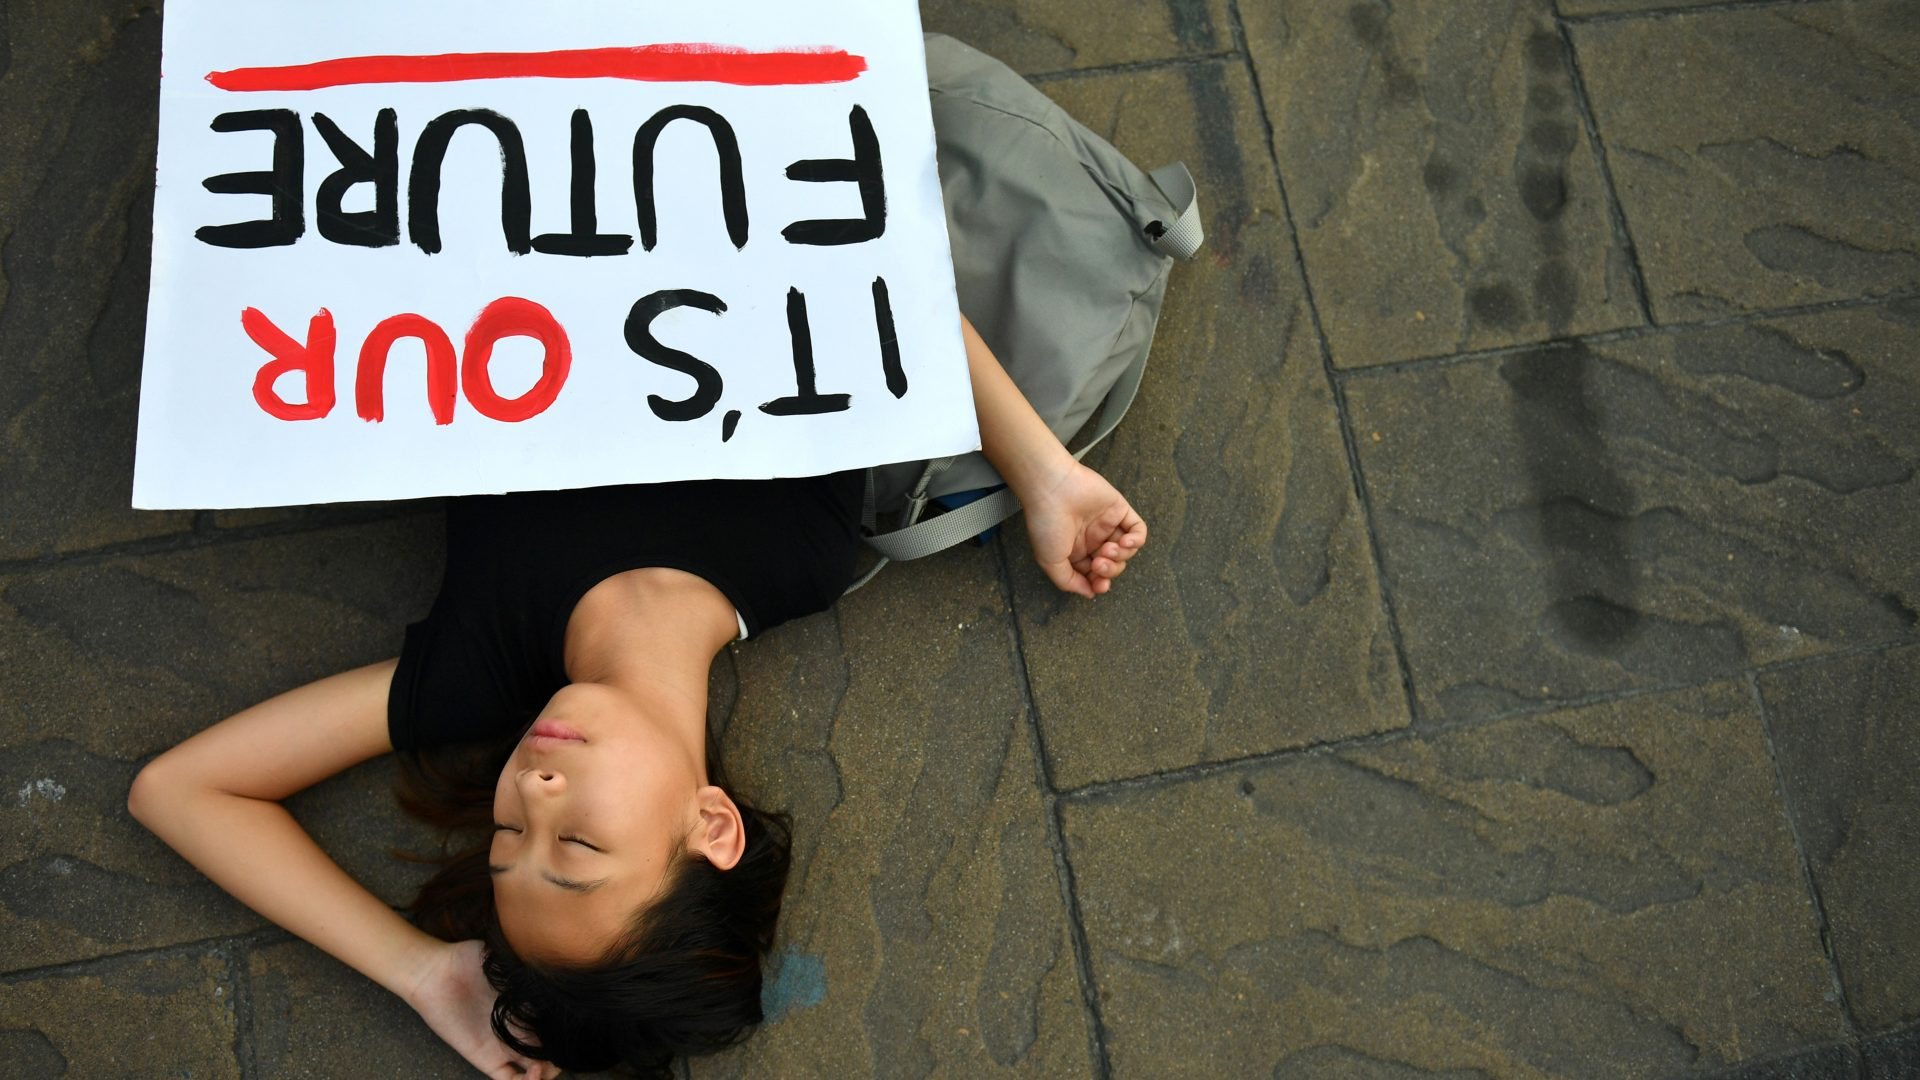 A climate change activist lies on the ground as she stages a 'drop dead' flashmob protest against climate change consequences at Lumpini Park in Bangkok, Thailand